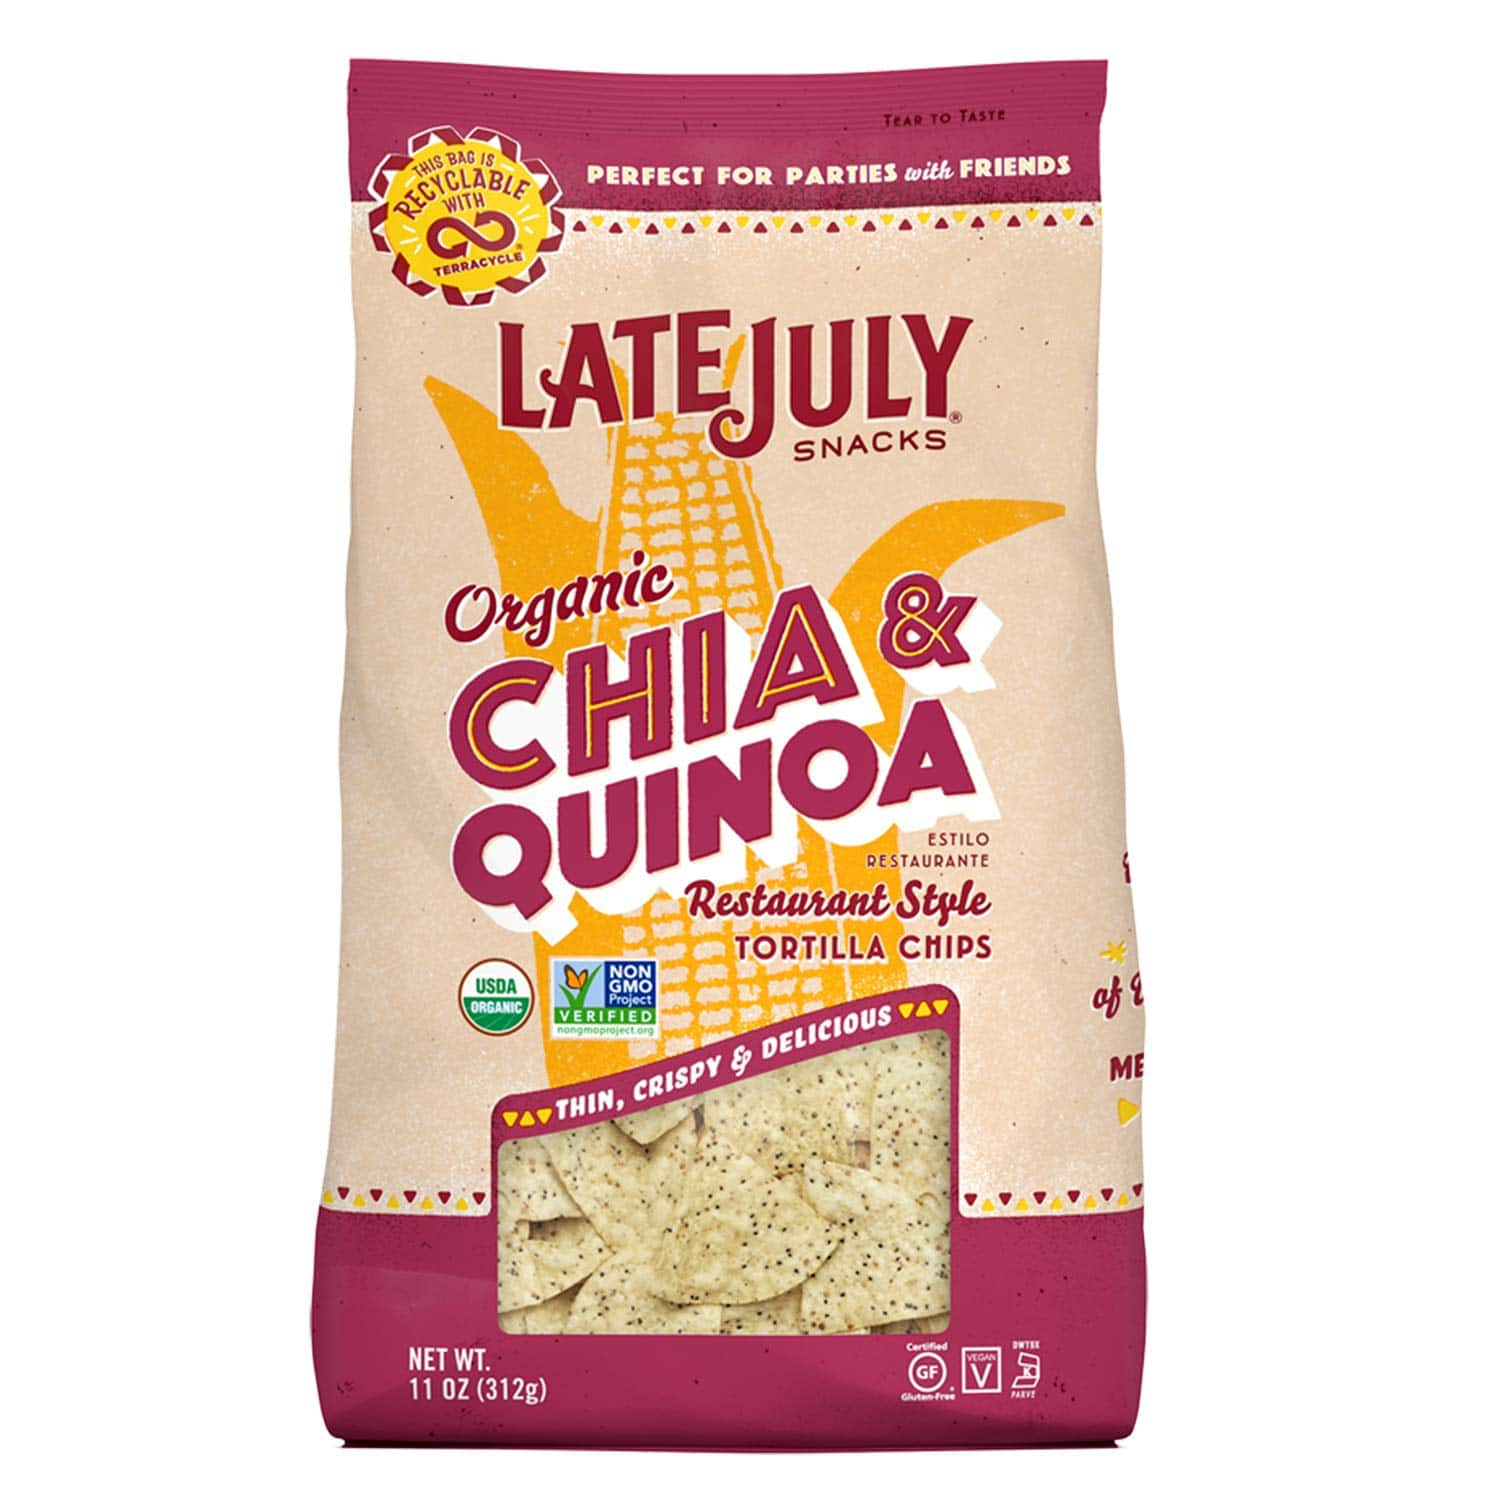 9-Count 11 oz. Late July Snacks Restaurant Style Chia & Quinoa Tortilla Chips $25.96 or Less AC w/s&s & MORE